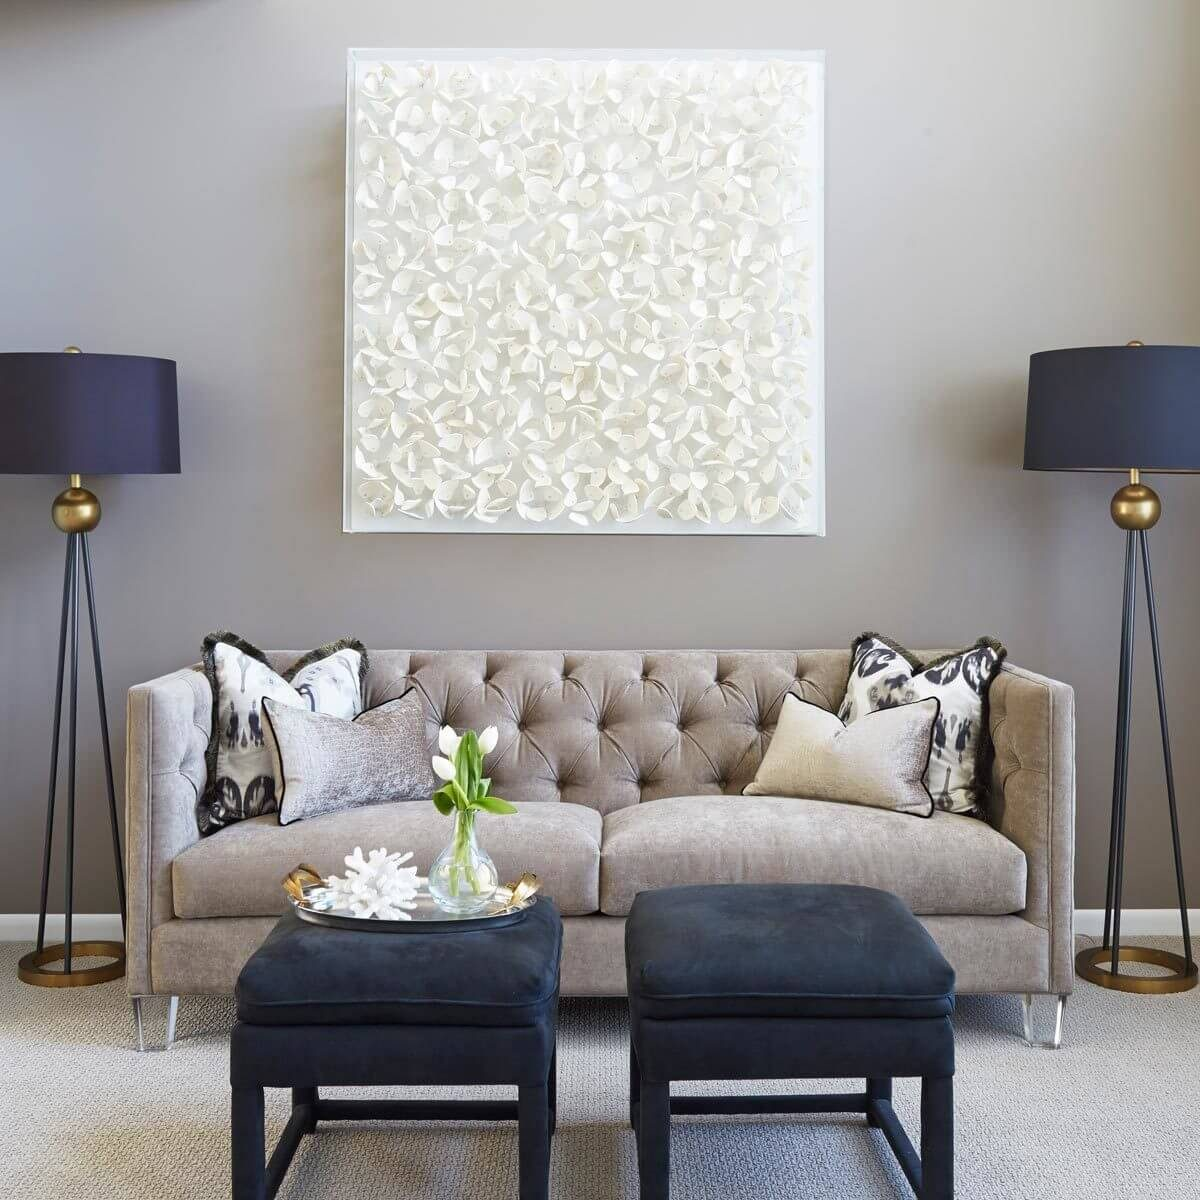 transitional style living room design ideas for apartments what is the family handyman